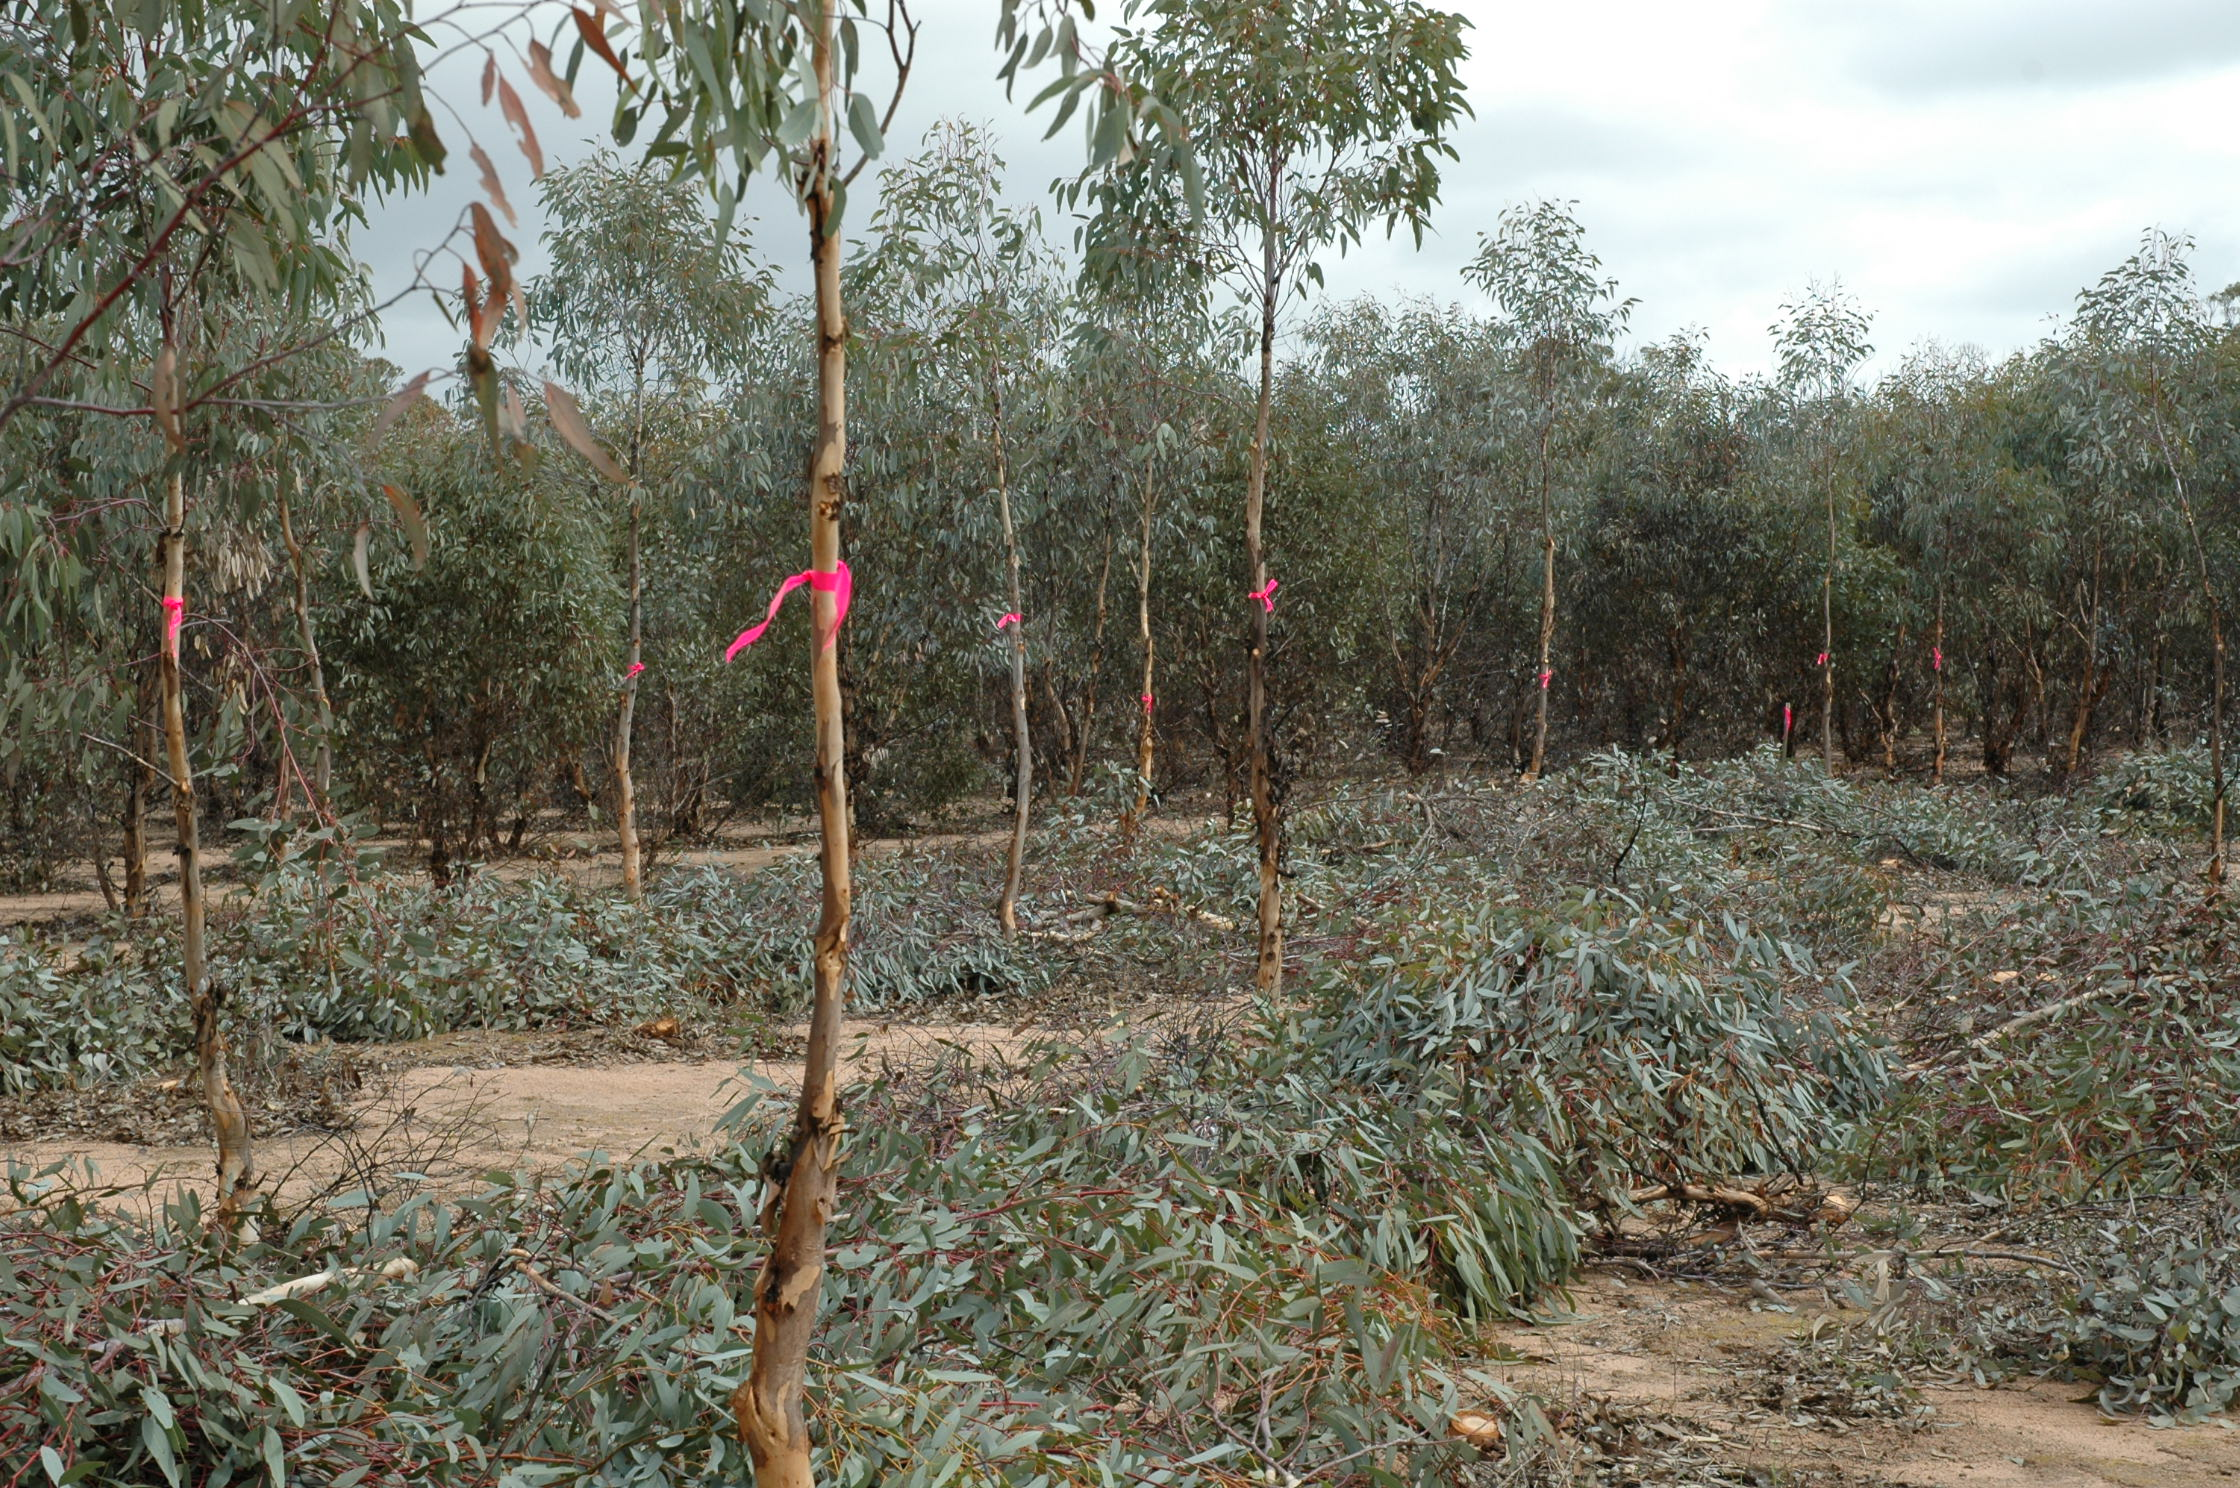 Wandoo marked for thinning